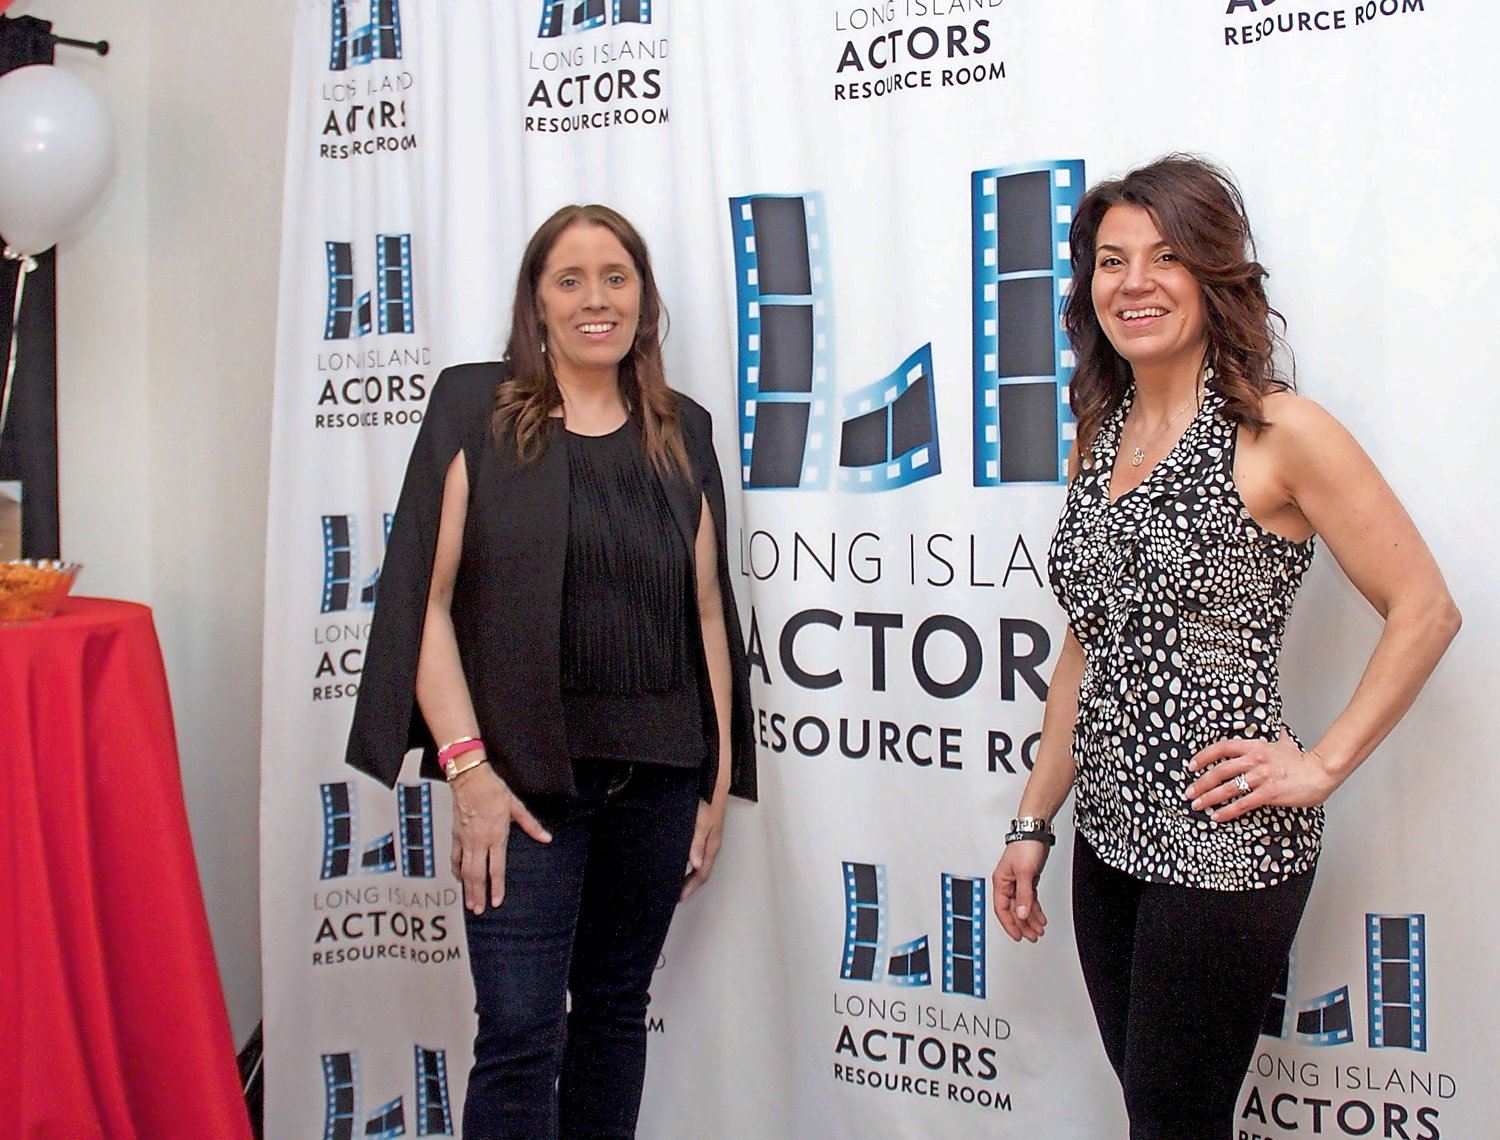 Paula Curcuru, left, and Irene Neglia, of LI Actors Resource Room, are committed to teaching children the business of acting as well as providing fun opportunities for non-actors.